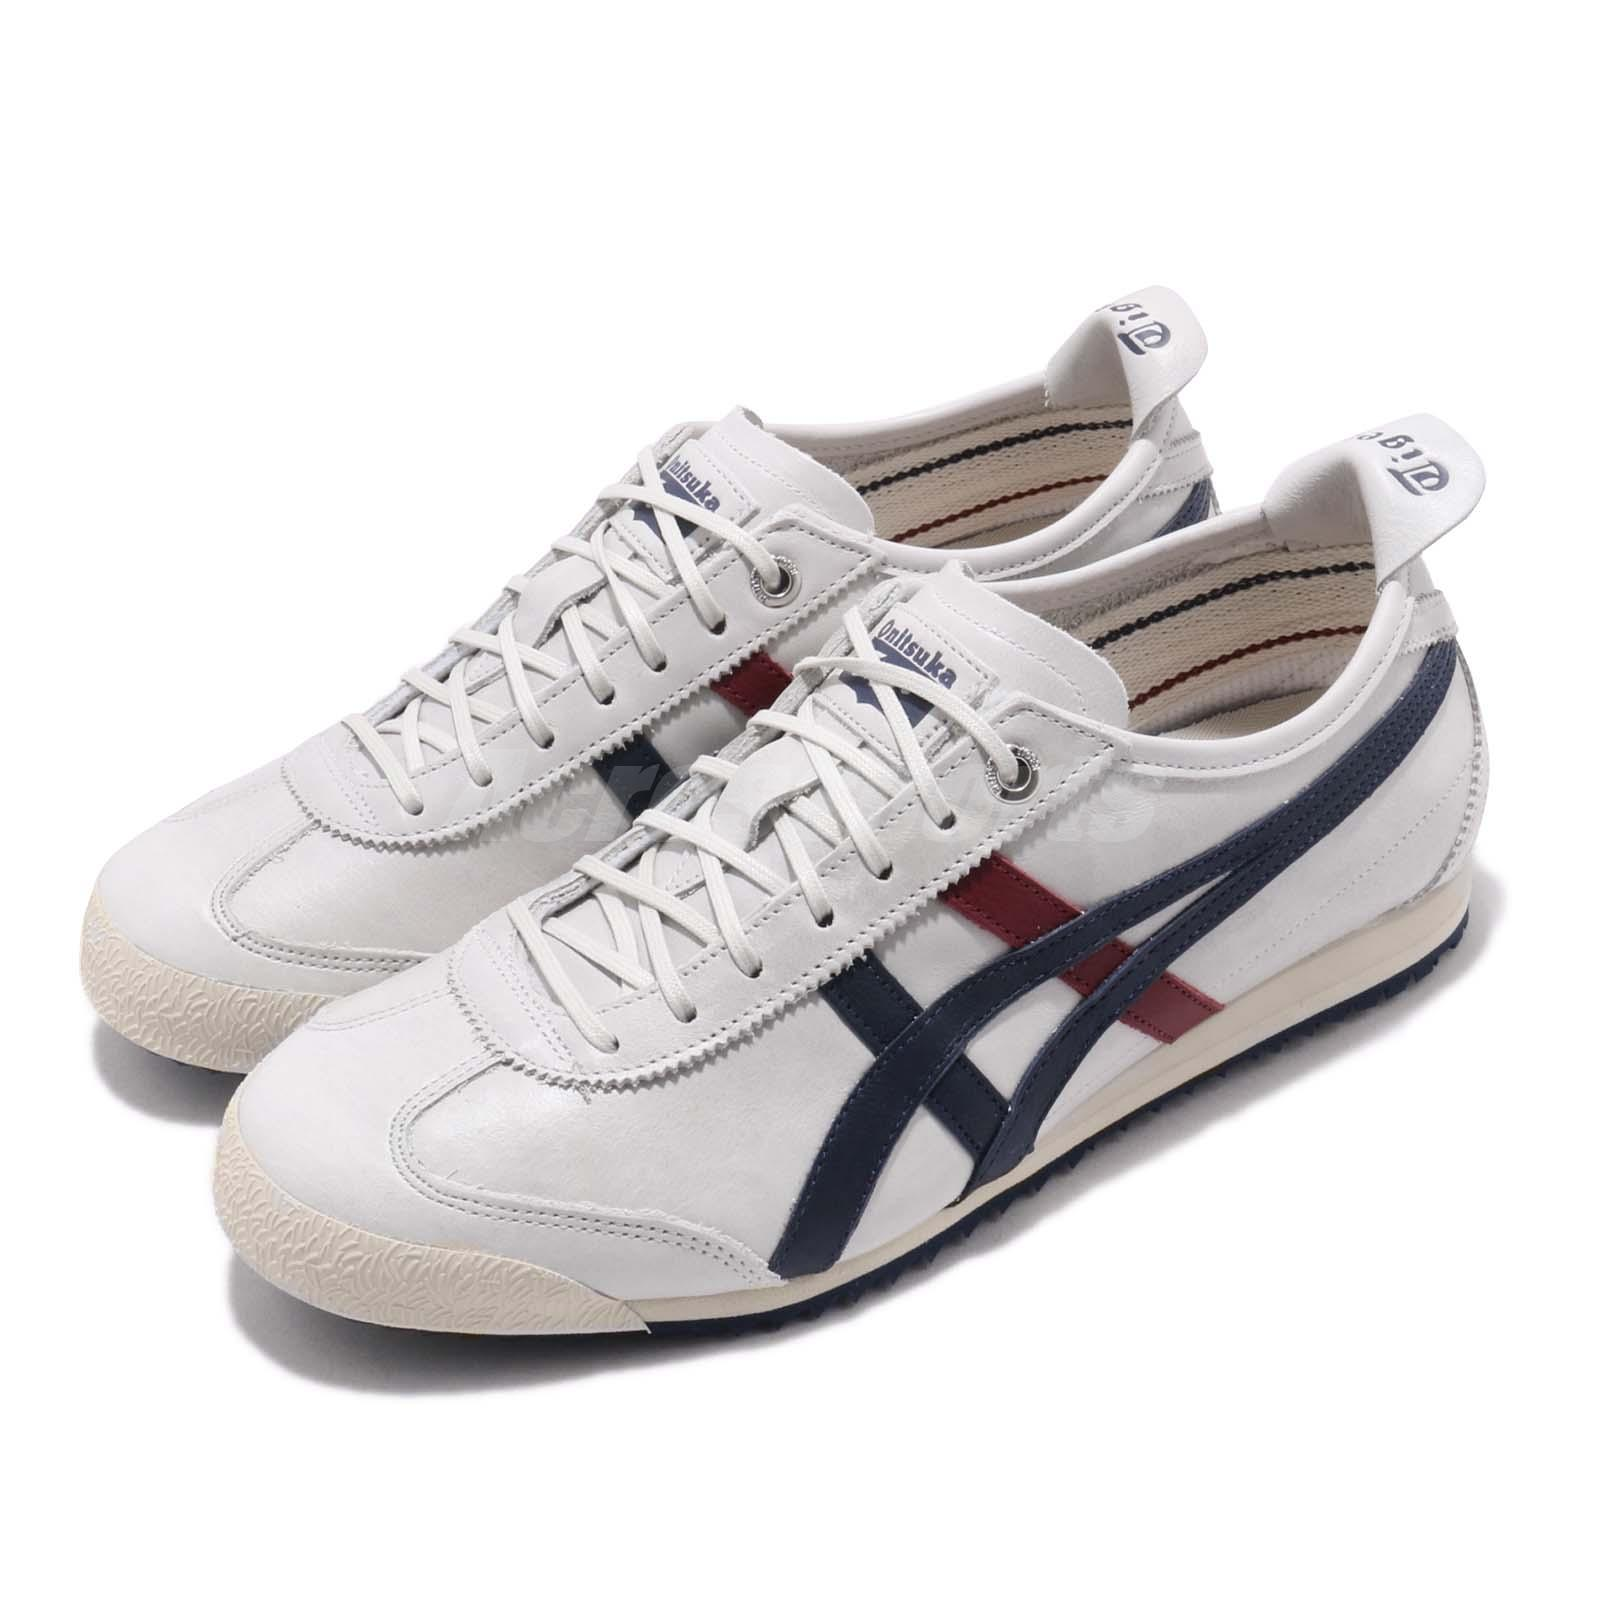 new product 6aeed faf9b Details about Asics Onitsuka Tiger Mexico 66 SD Grey Blue Red Retro Running  Shoes 1183A474-020